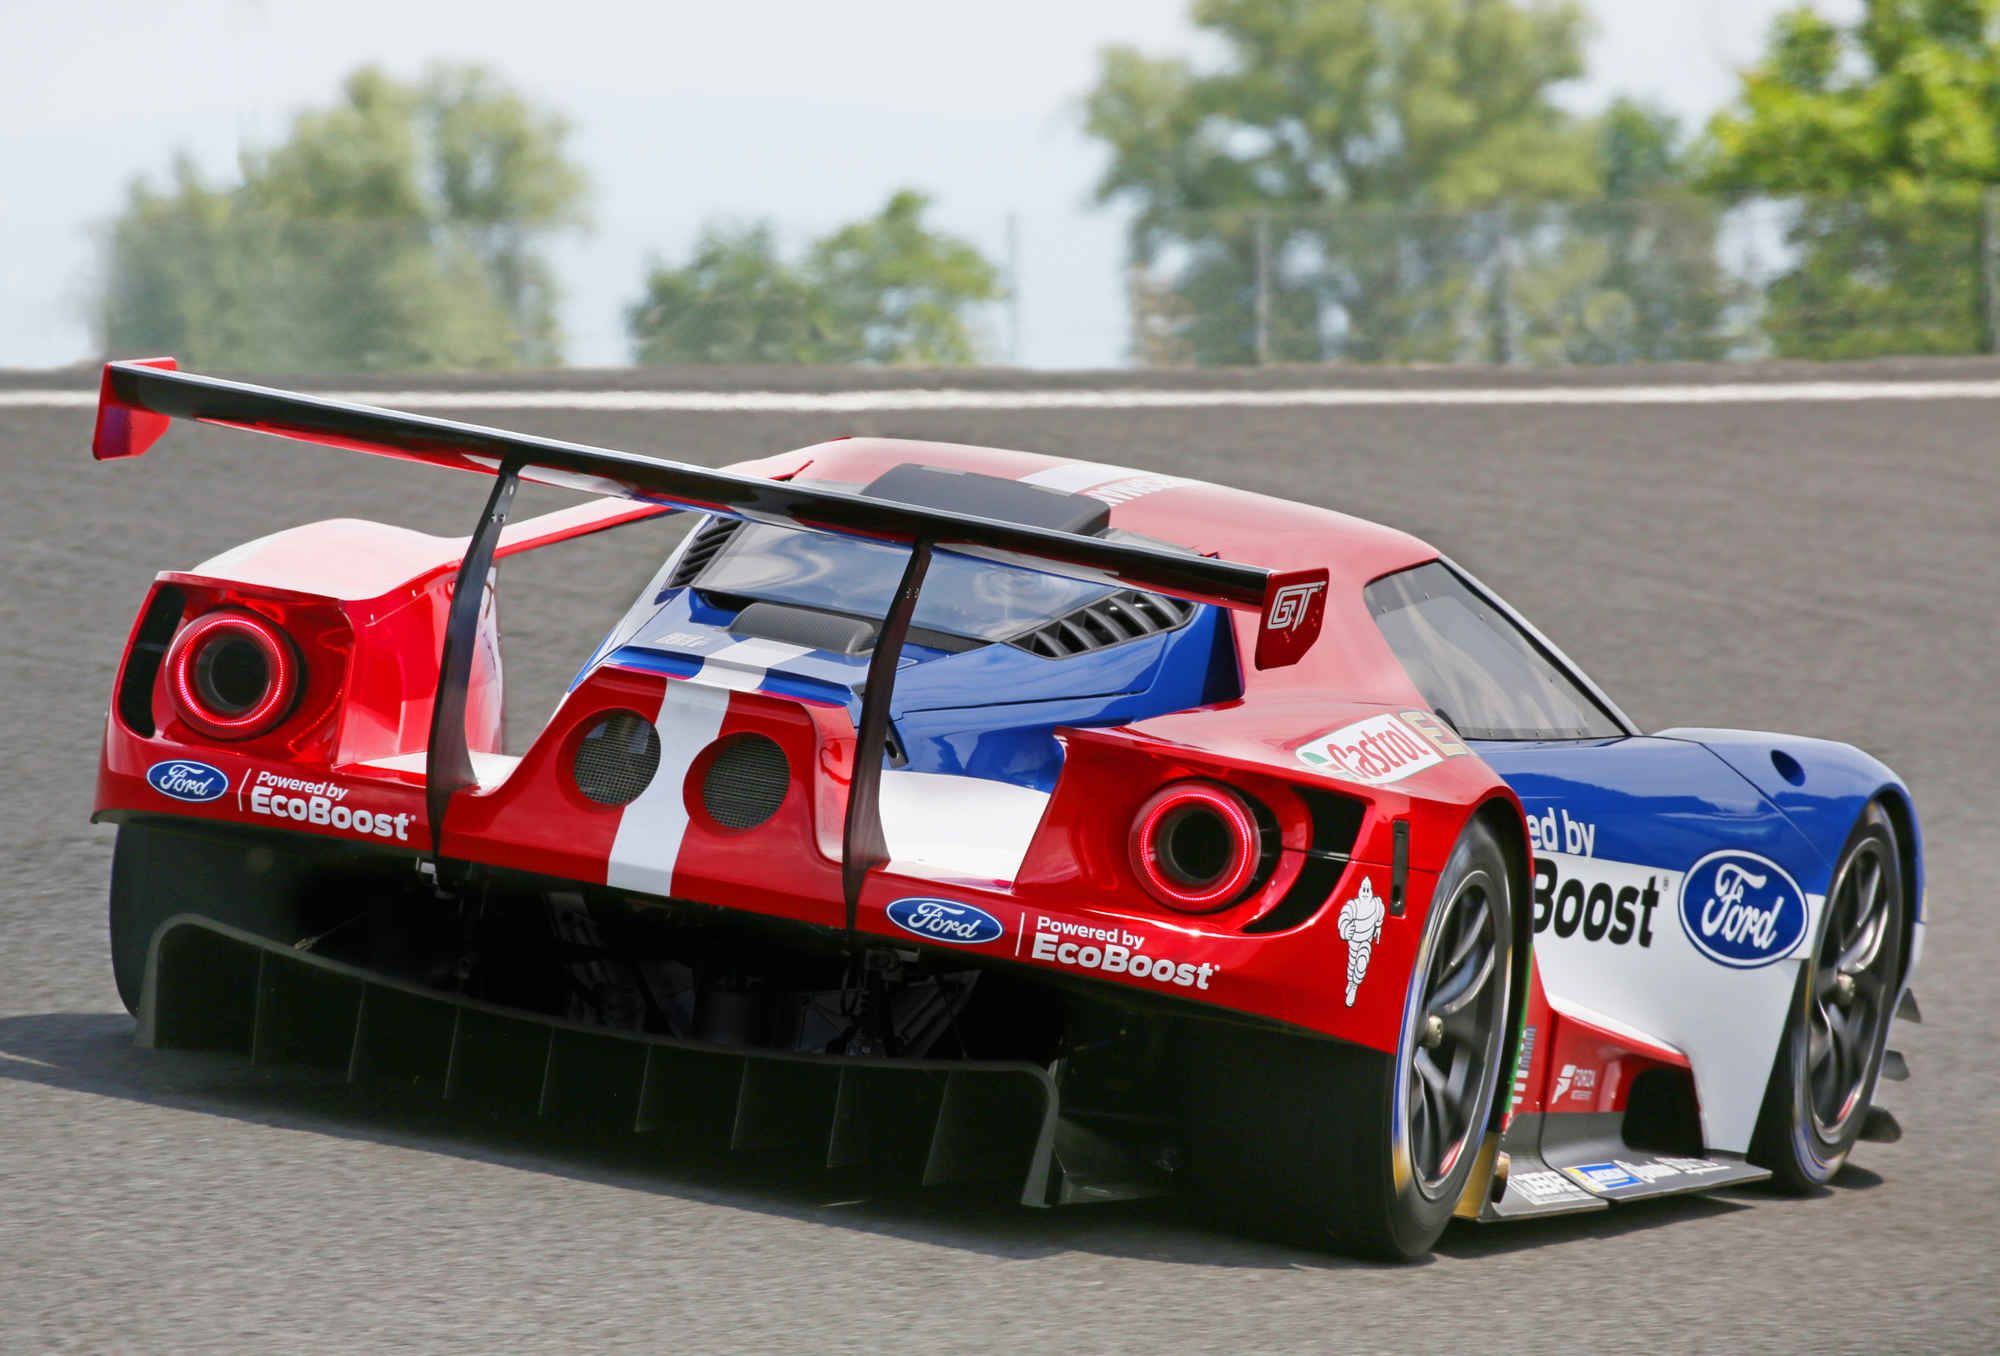 The Ford Gt Race Car Is A Declaration Of War On France Ford Gt Ford Gt Le Mans Ford Racing